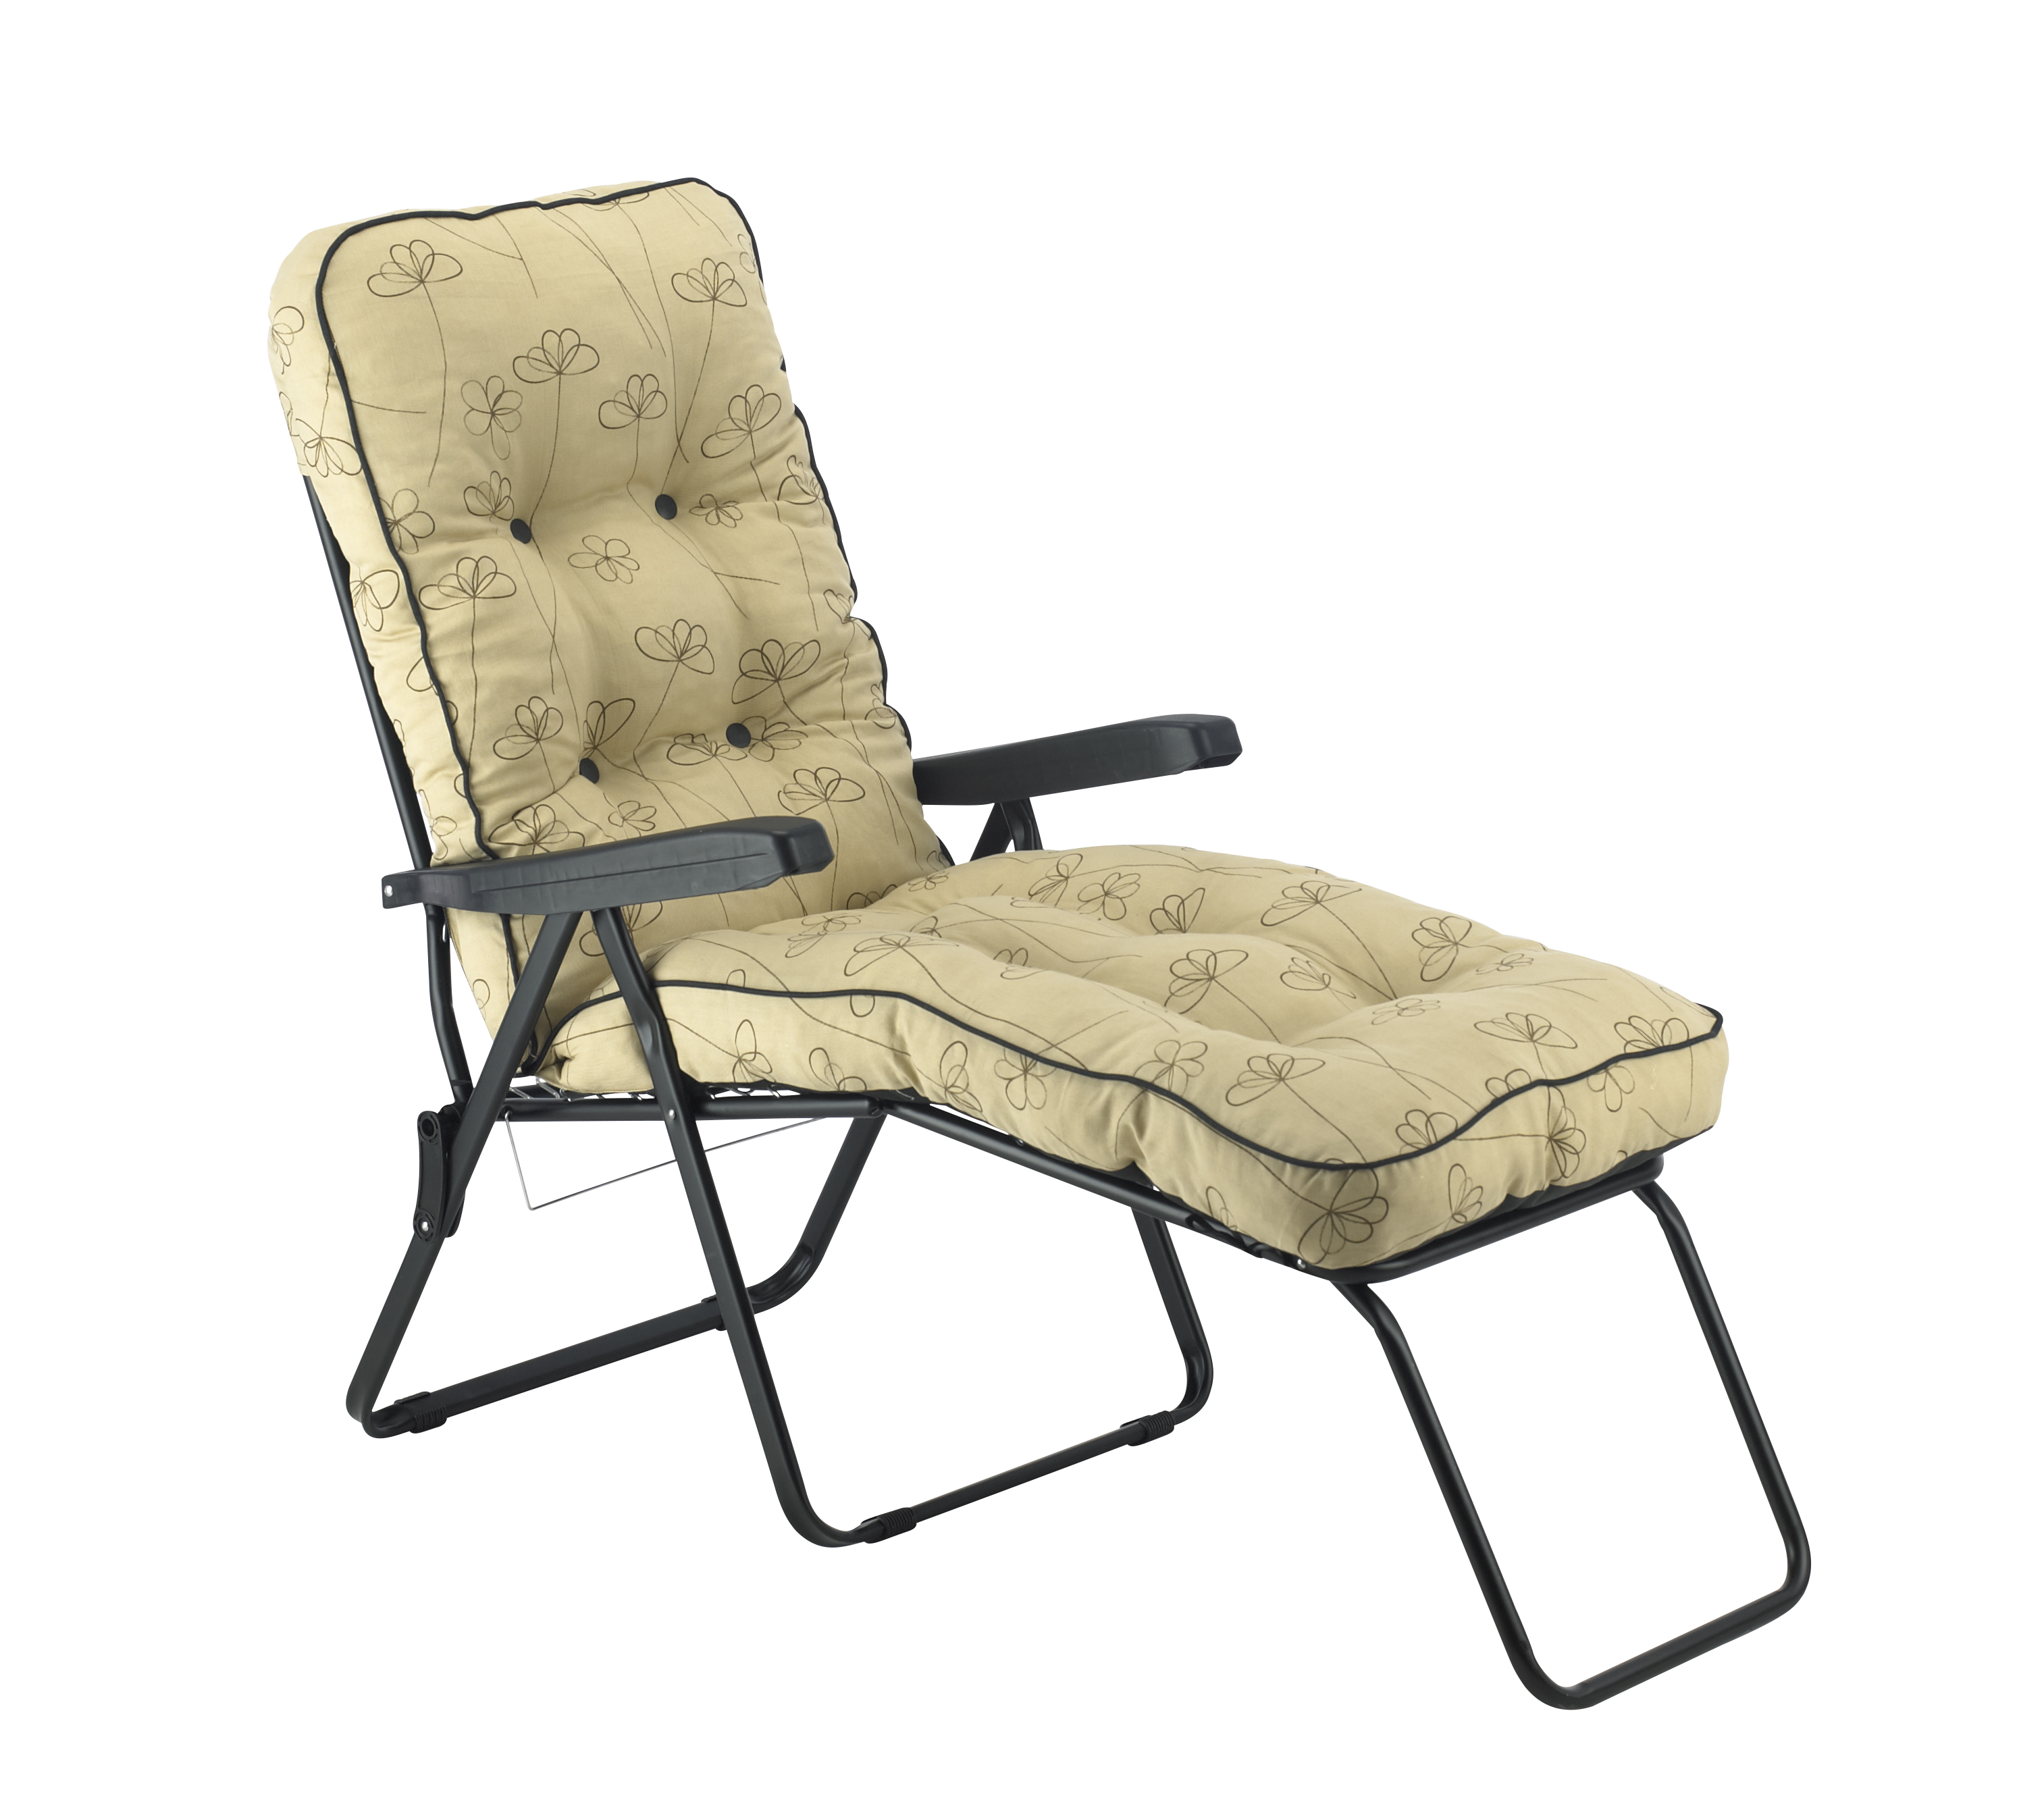 NANCY NOIR LOUNGER